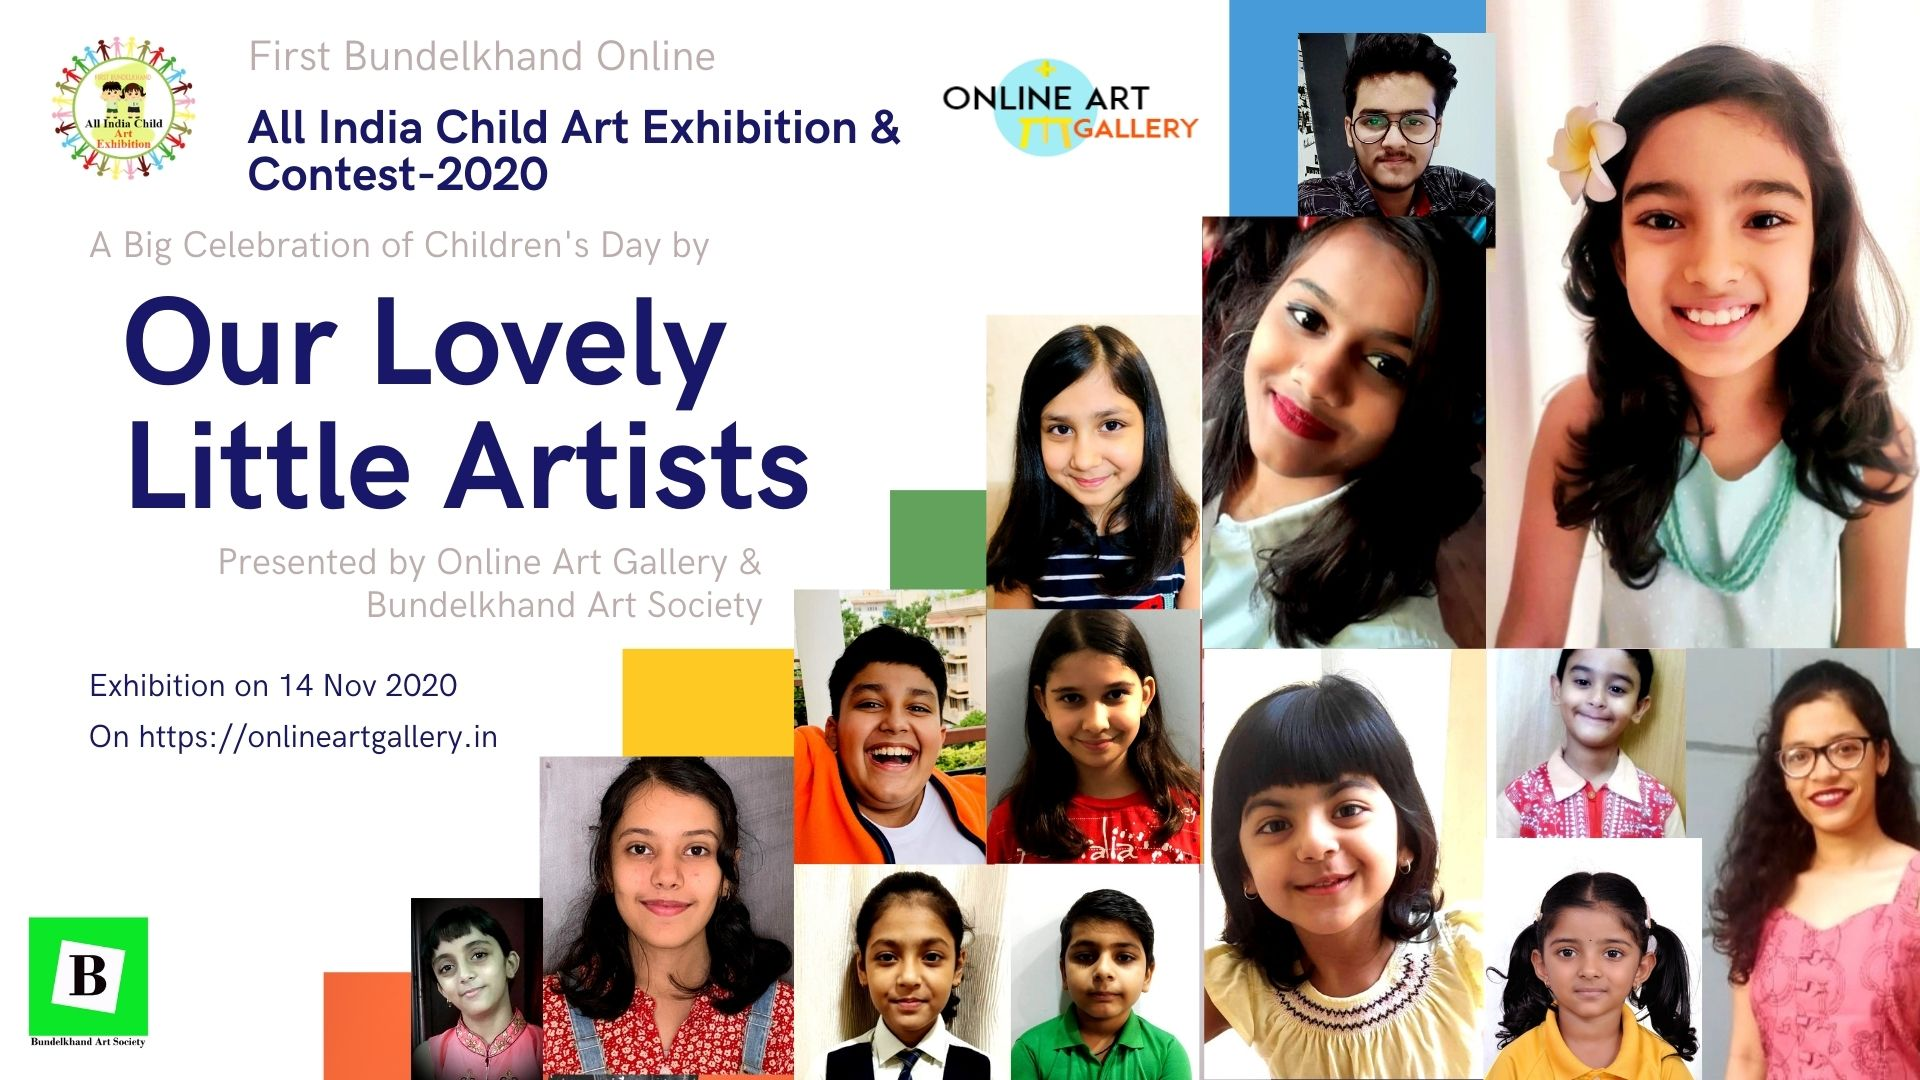 All India Child Art Exhibition on Online Art Gallery